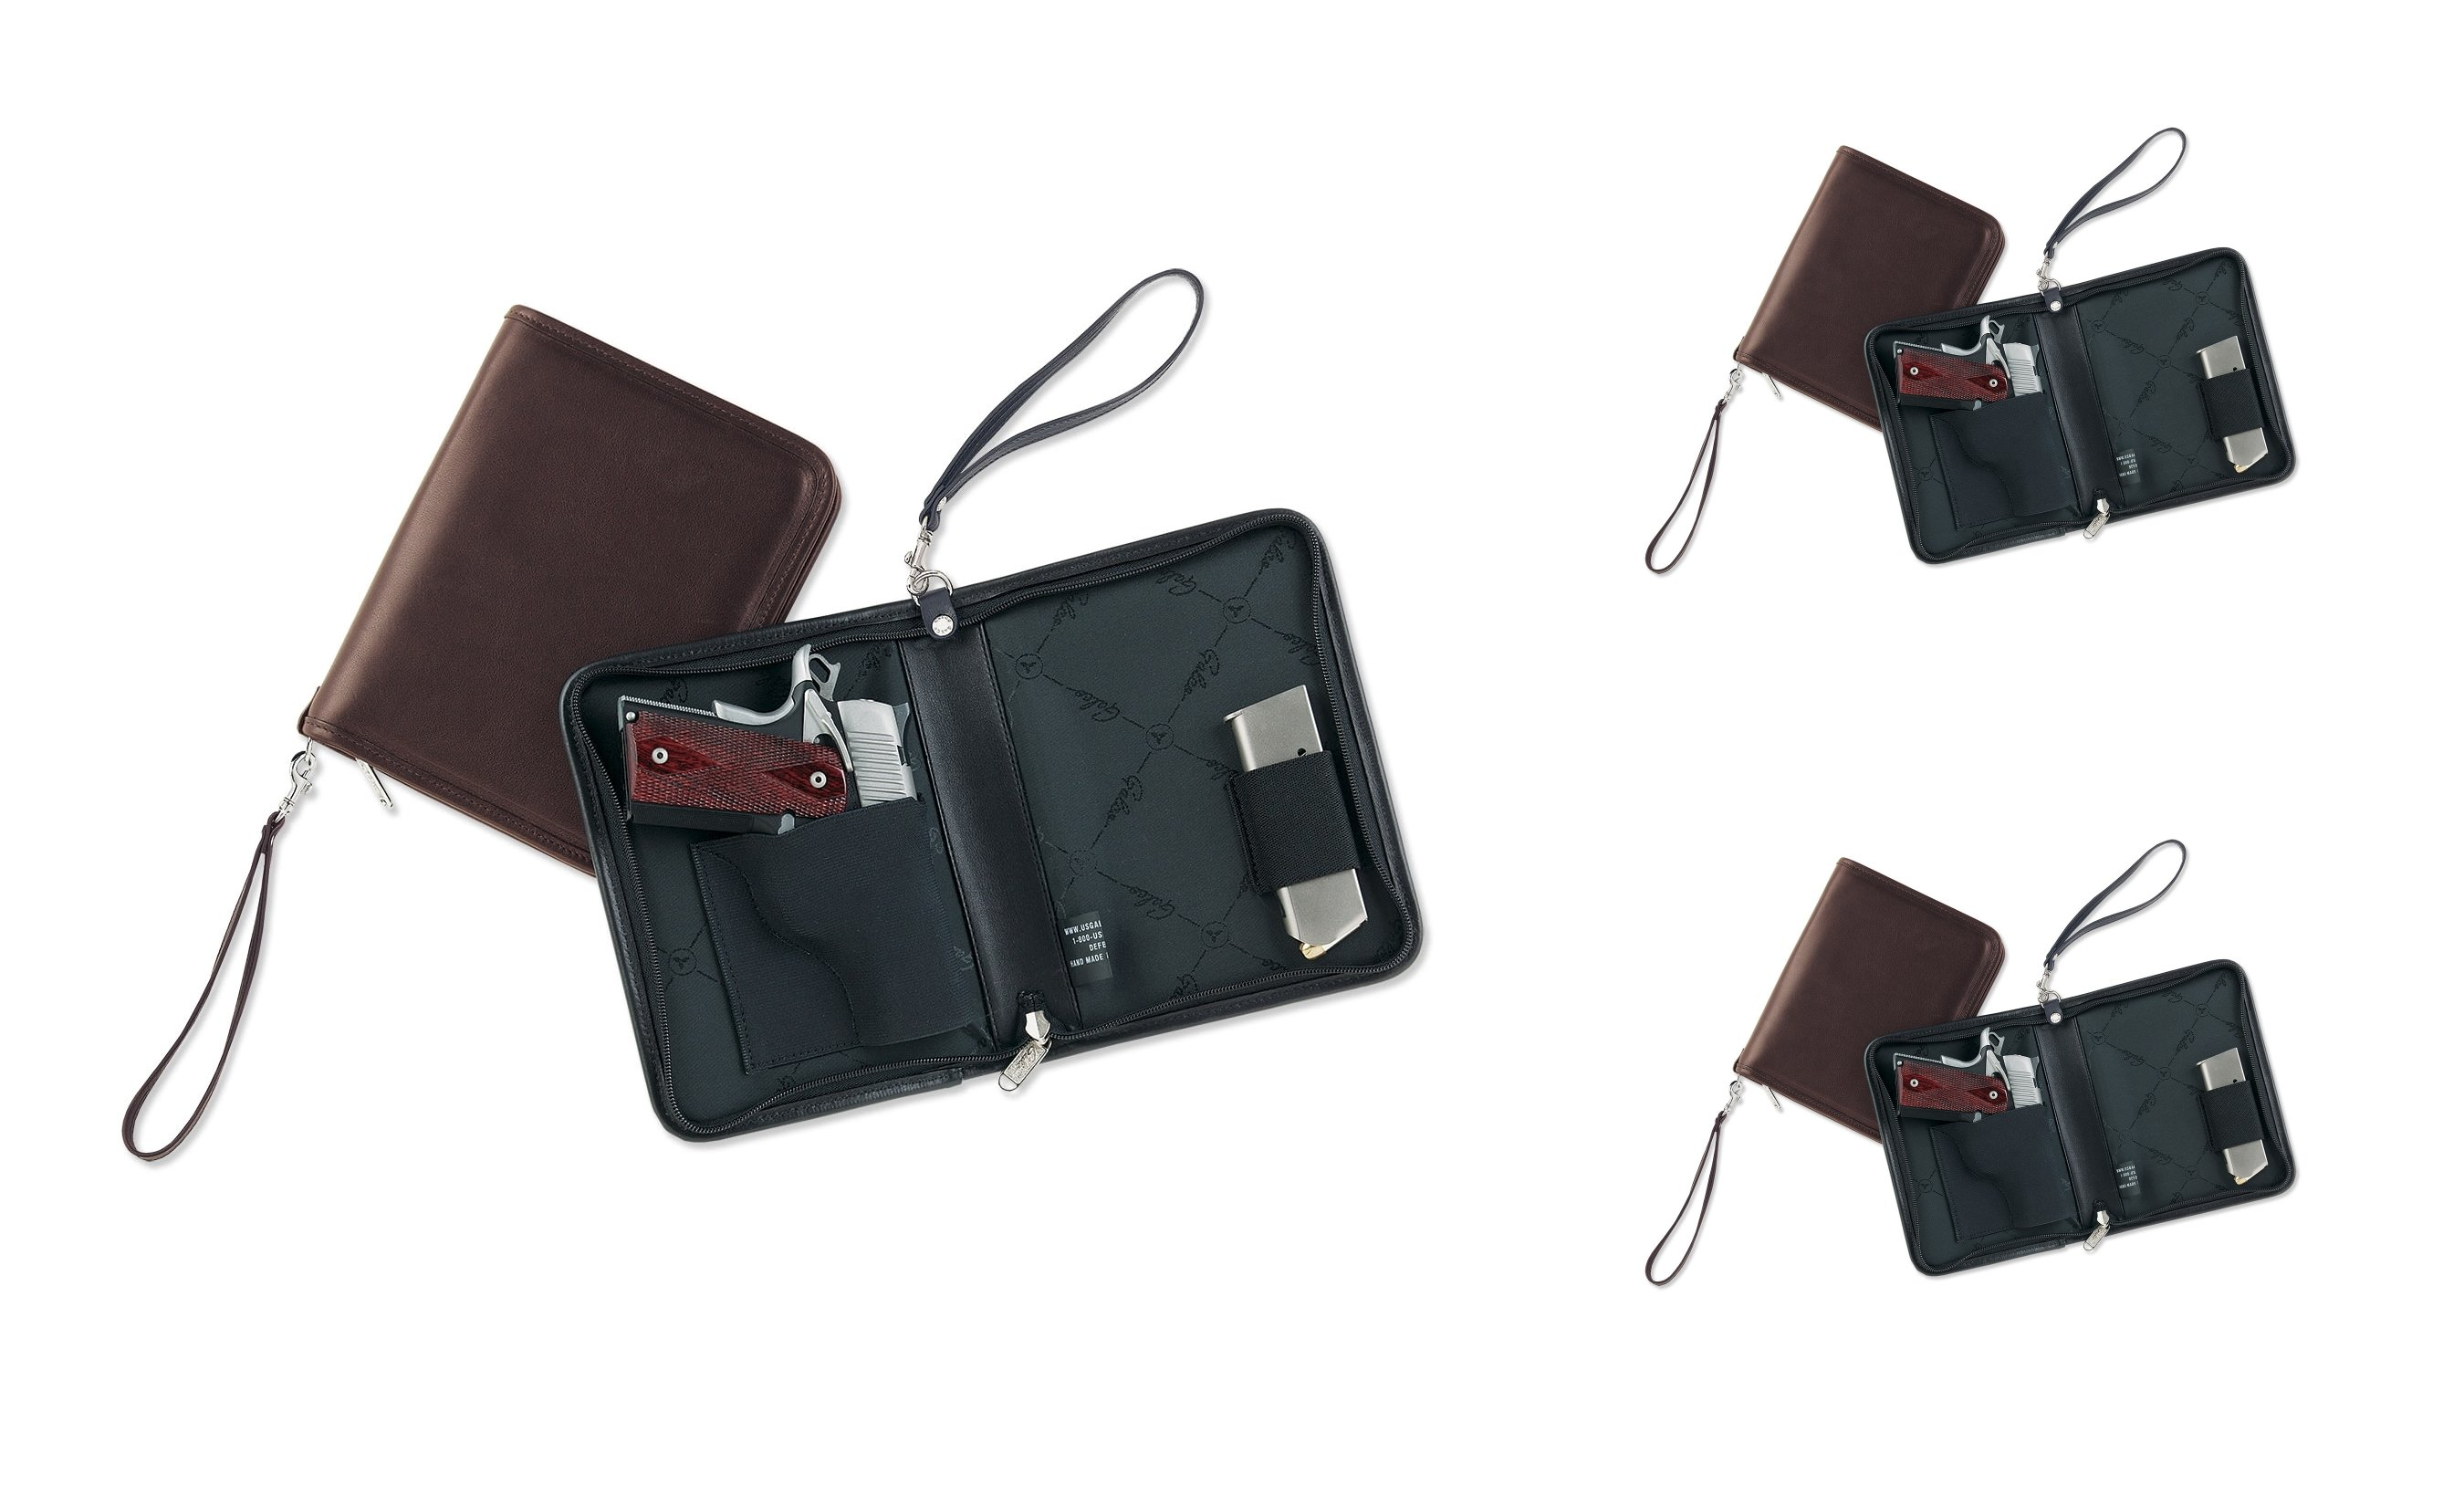 Galco Defense Planner Concealed Compact Pistol/Handgun Carrying Case/Holster, Leather